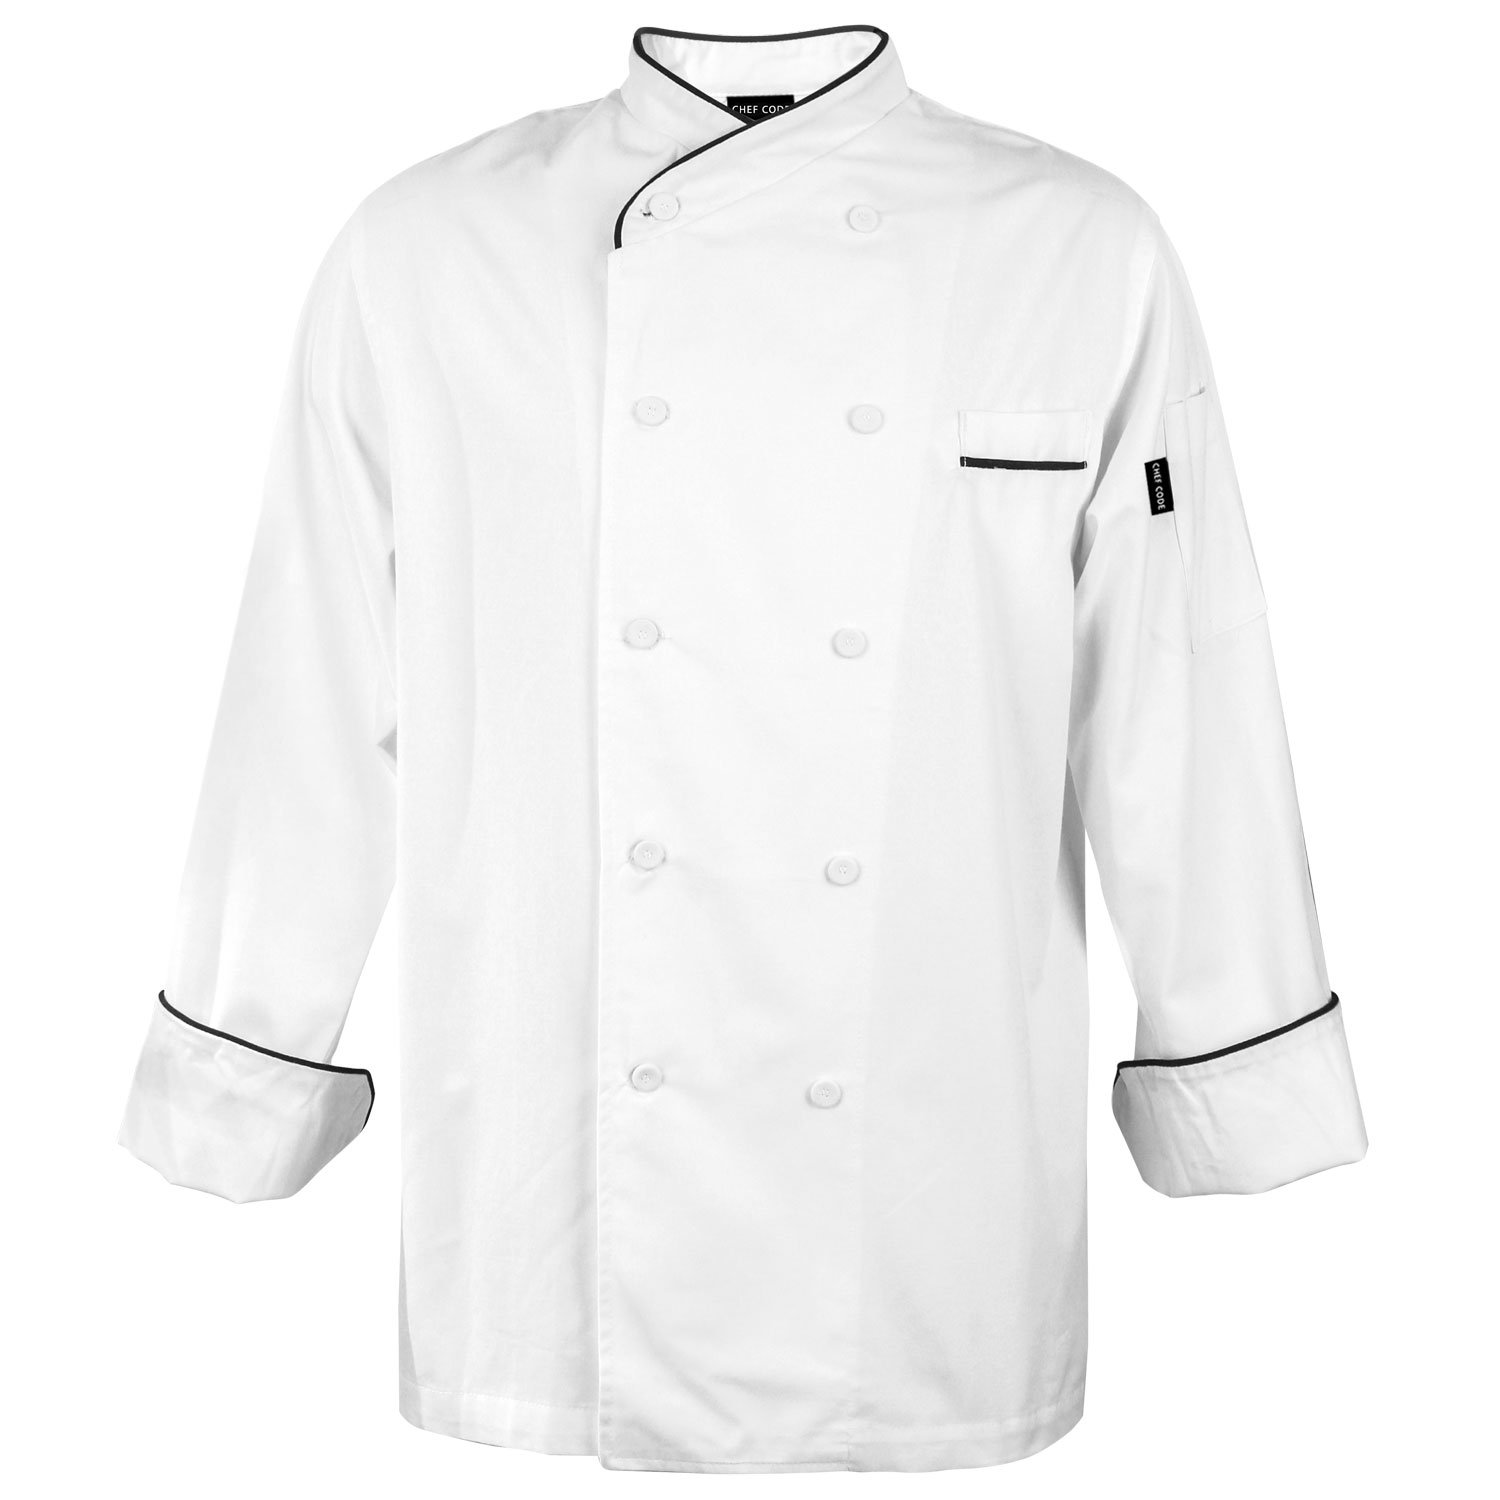 Chef Code Gossypium Prestige Executive Chef Coat Unisex (XL, White) by Chef Code